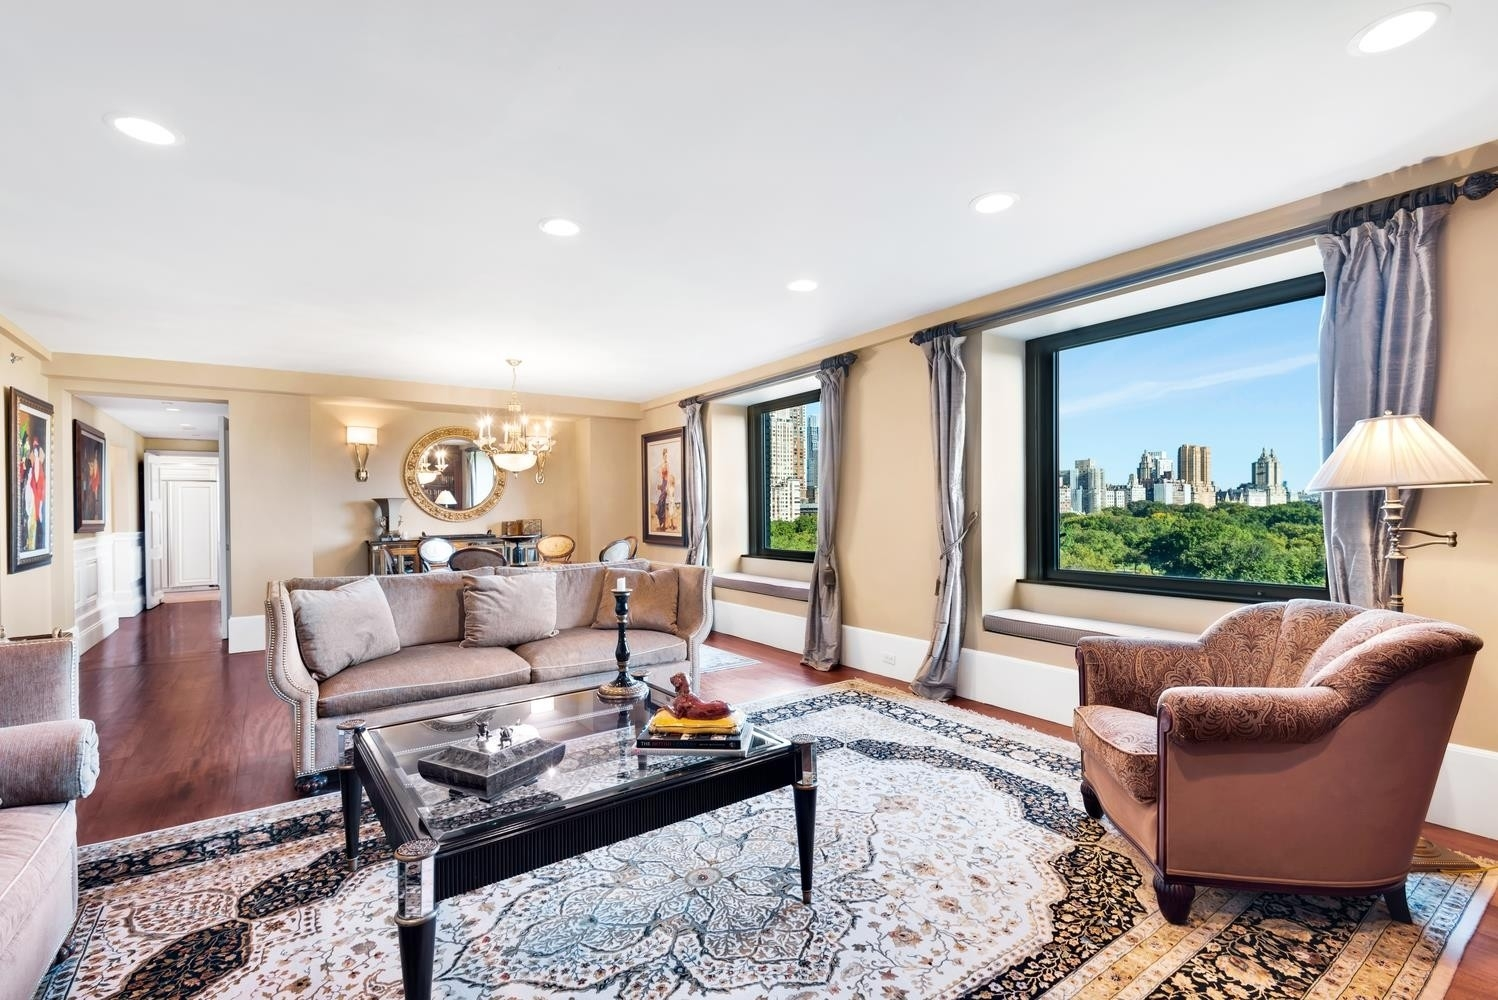 Condominium for Sale at Essex House, 160 CENTRAL PARK S, 1001 Central Park South, New York, NY 10019